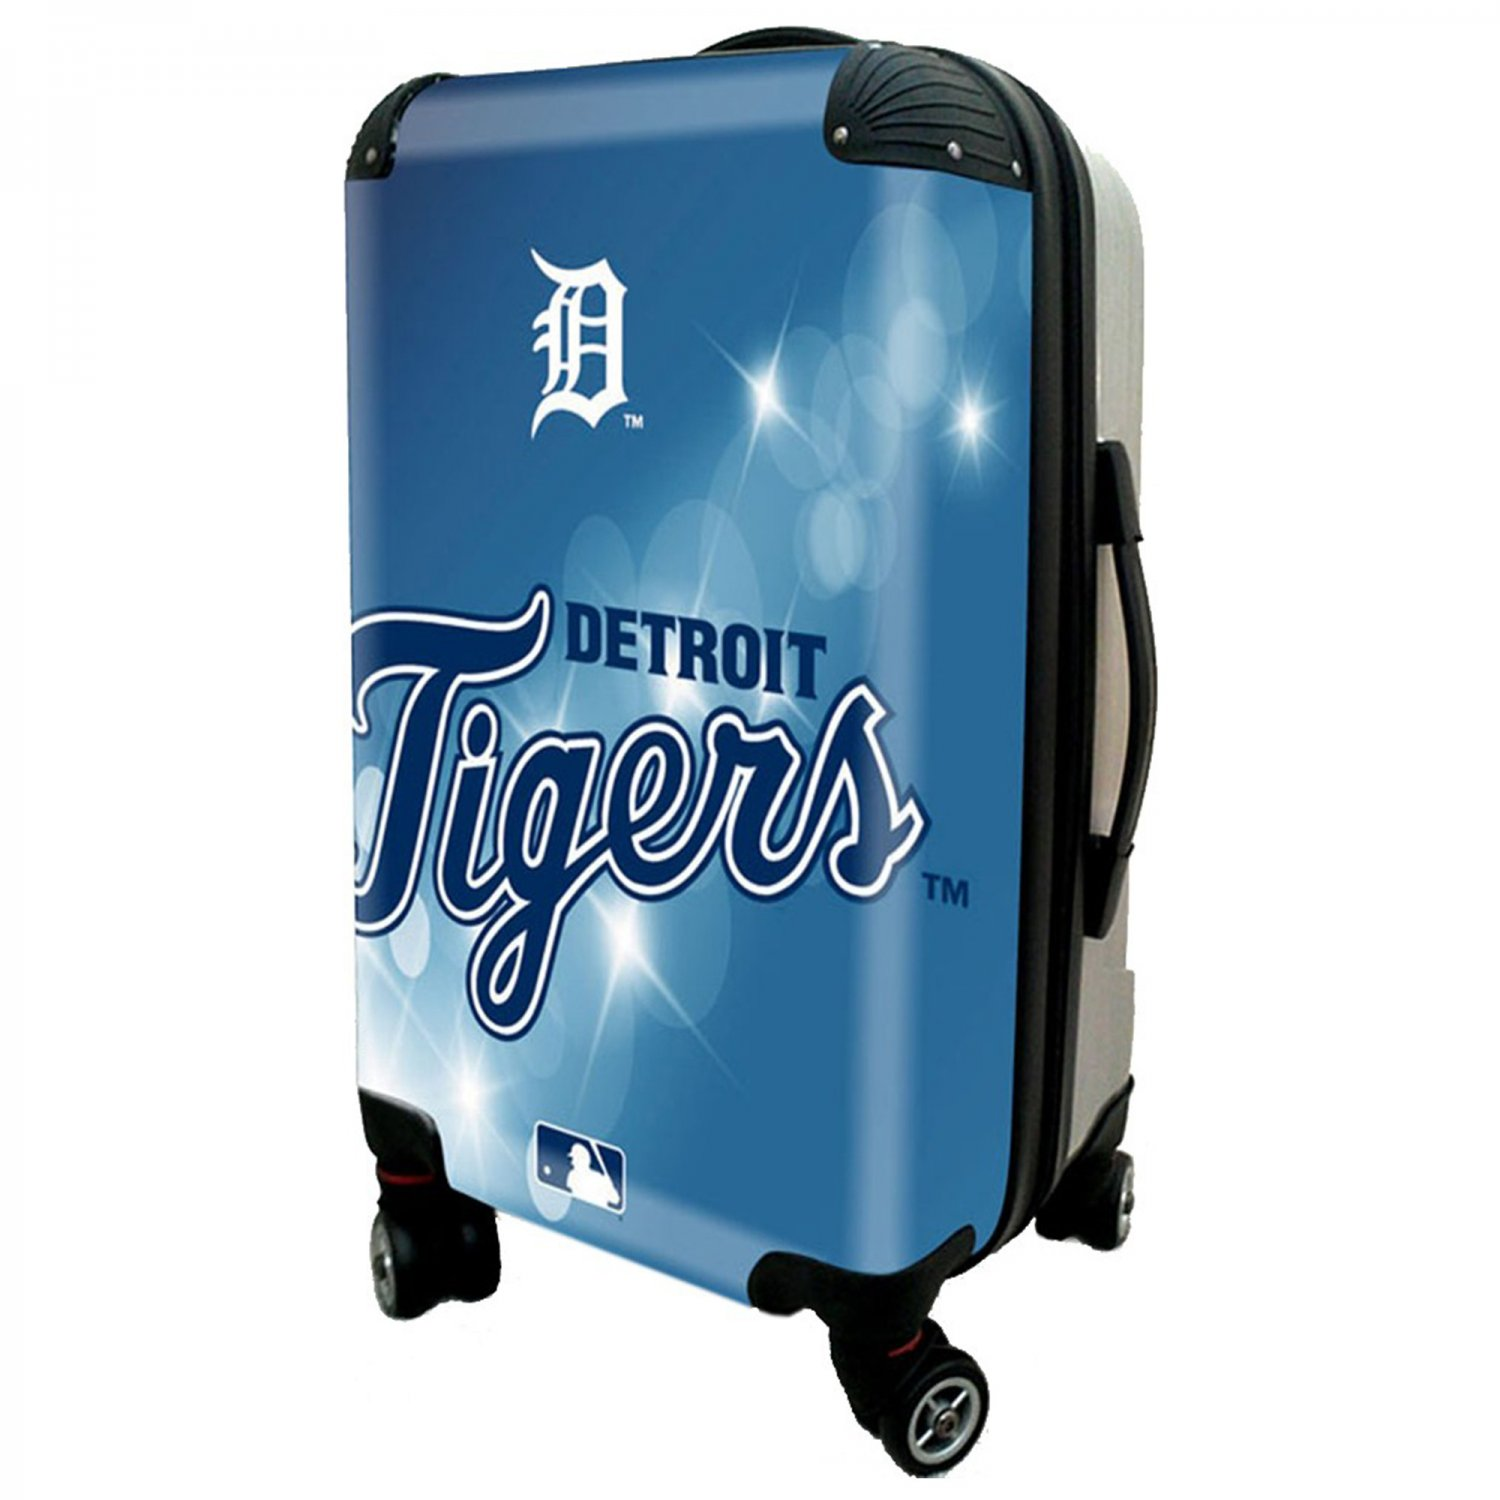 "Detroit Tigers, 21"" Clear Poly Carry-On Luggage by Kaybull #DET9"